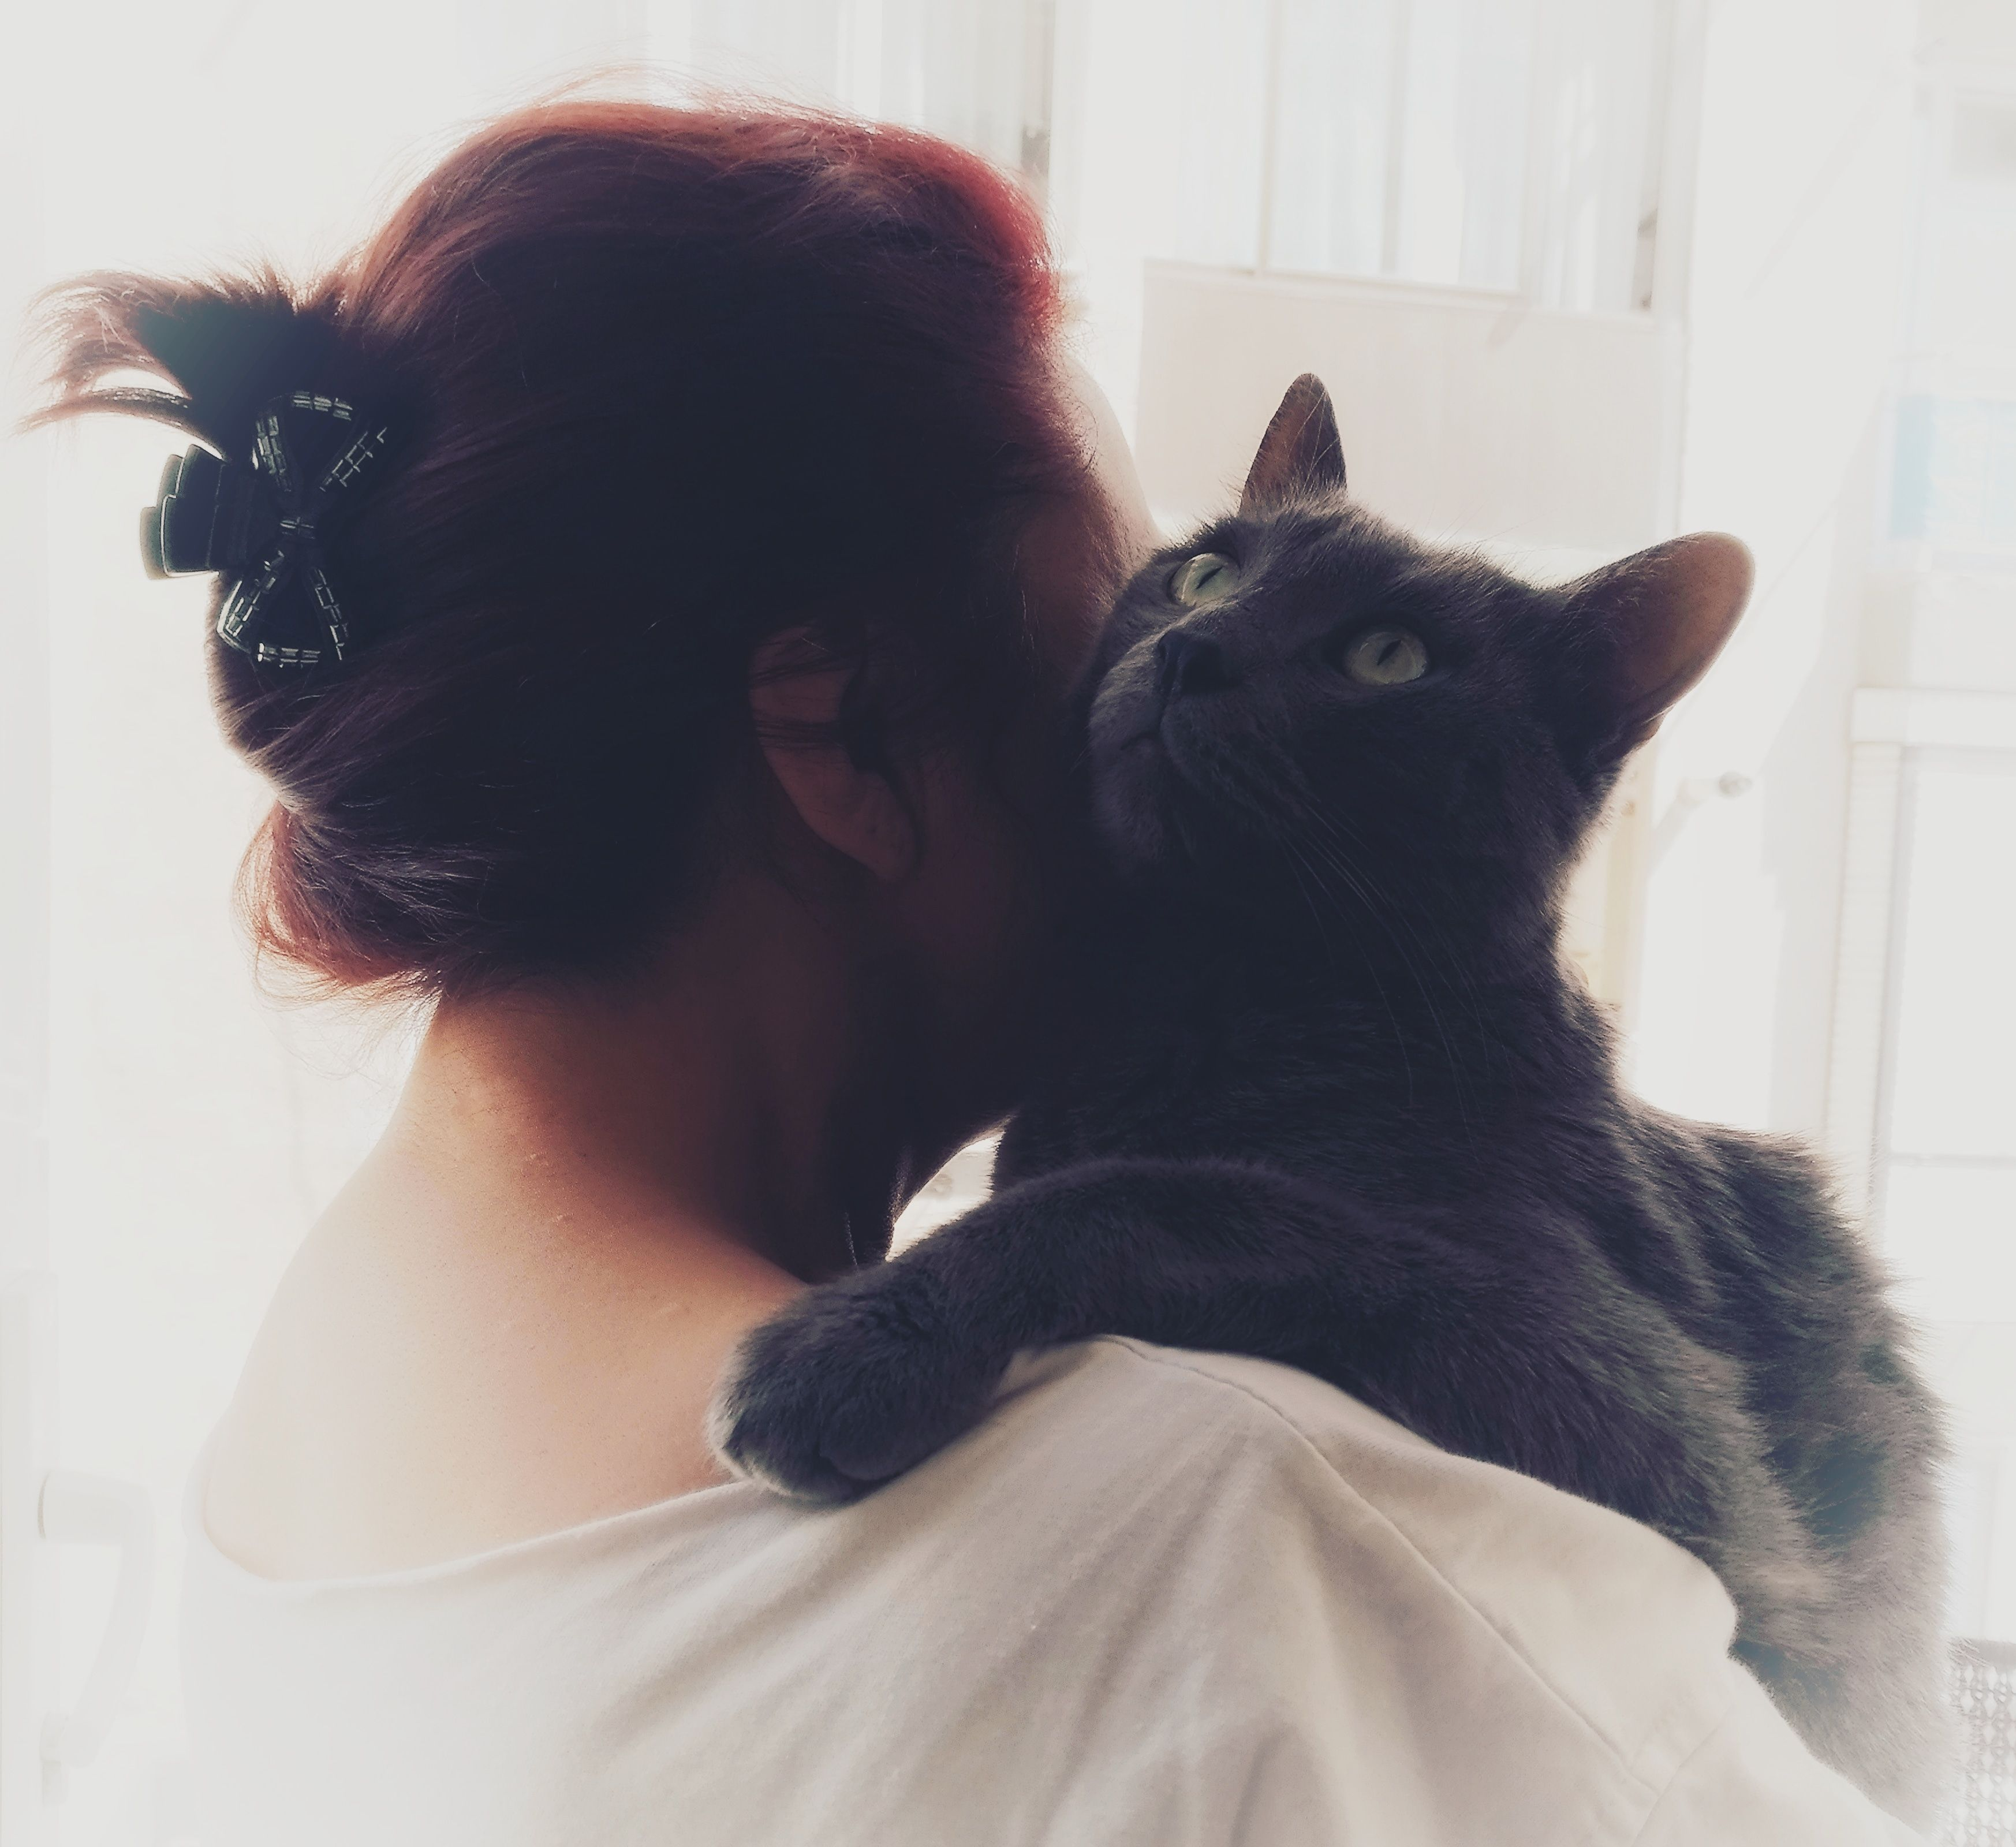 Mom and her cat (which she didn't wantneed or like) http